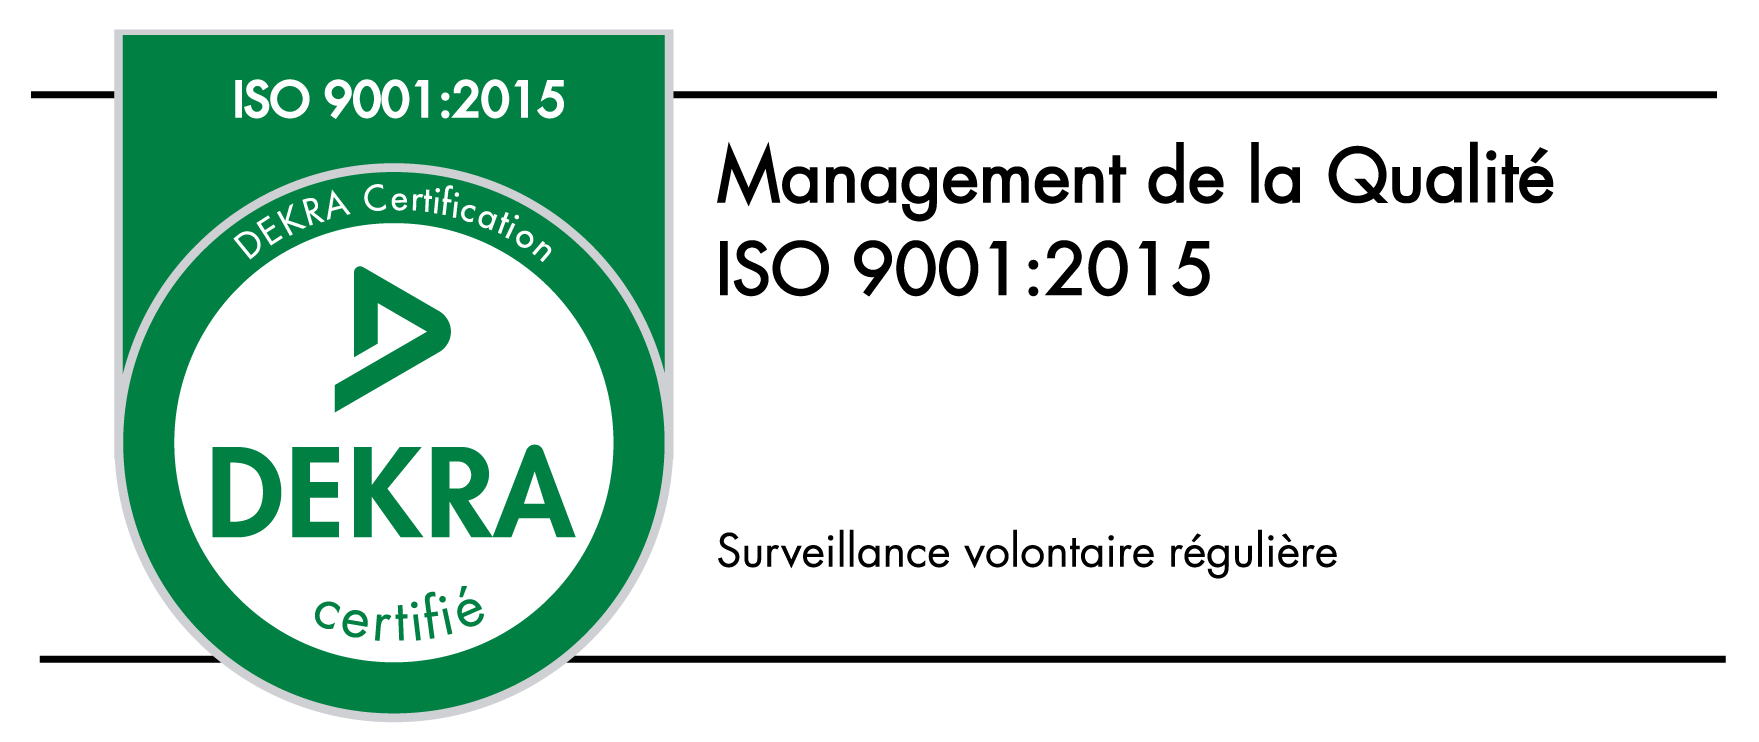 ISO-9001-2015-management-de-la-qualitÇ